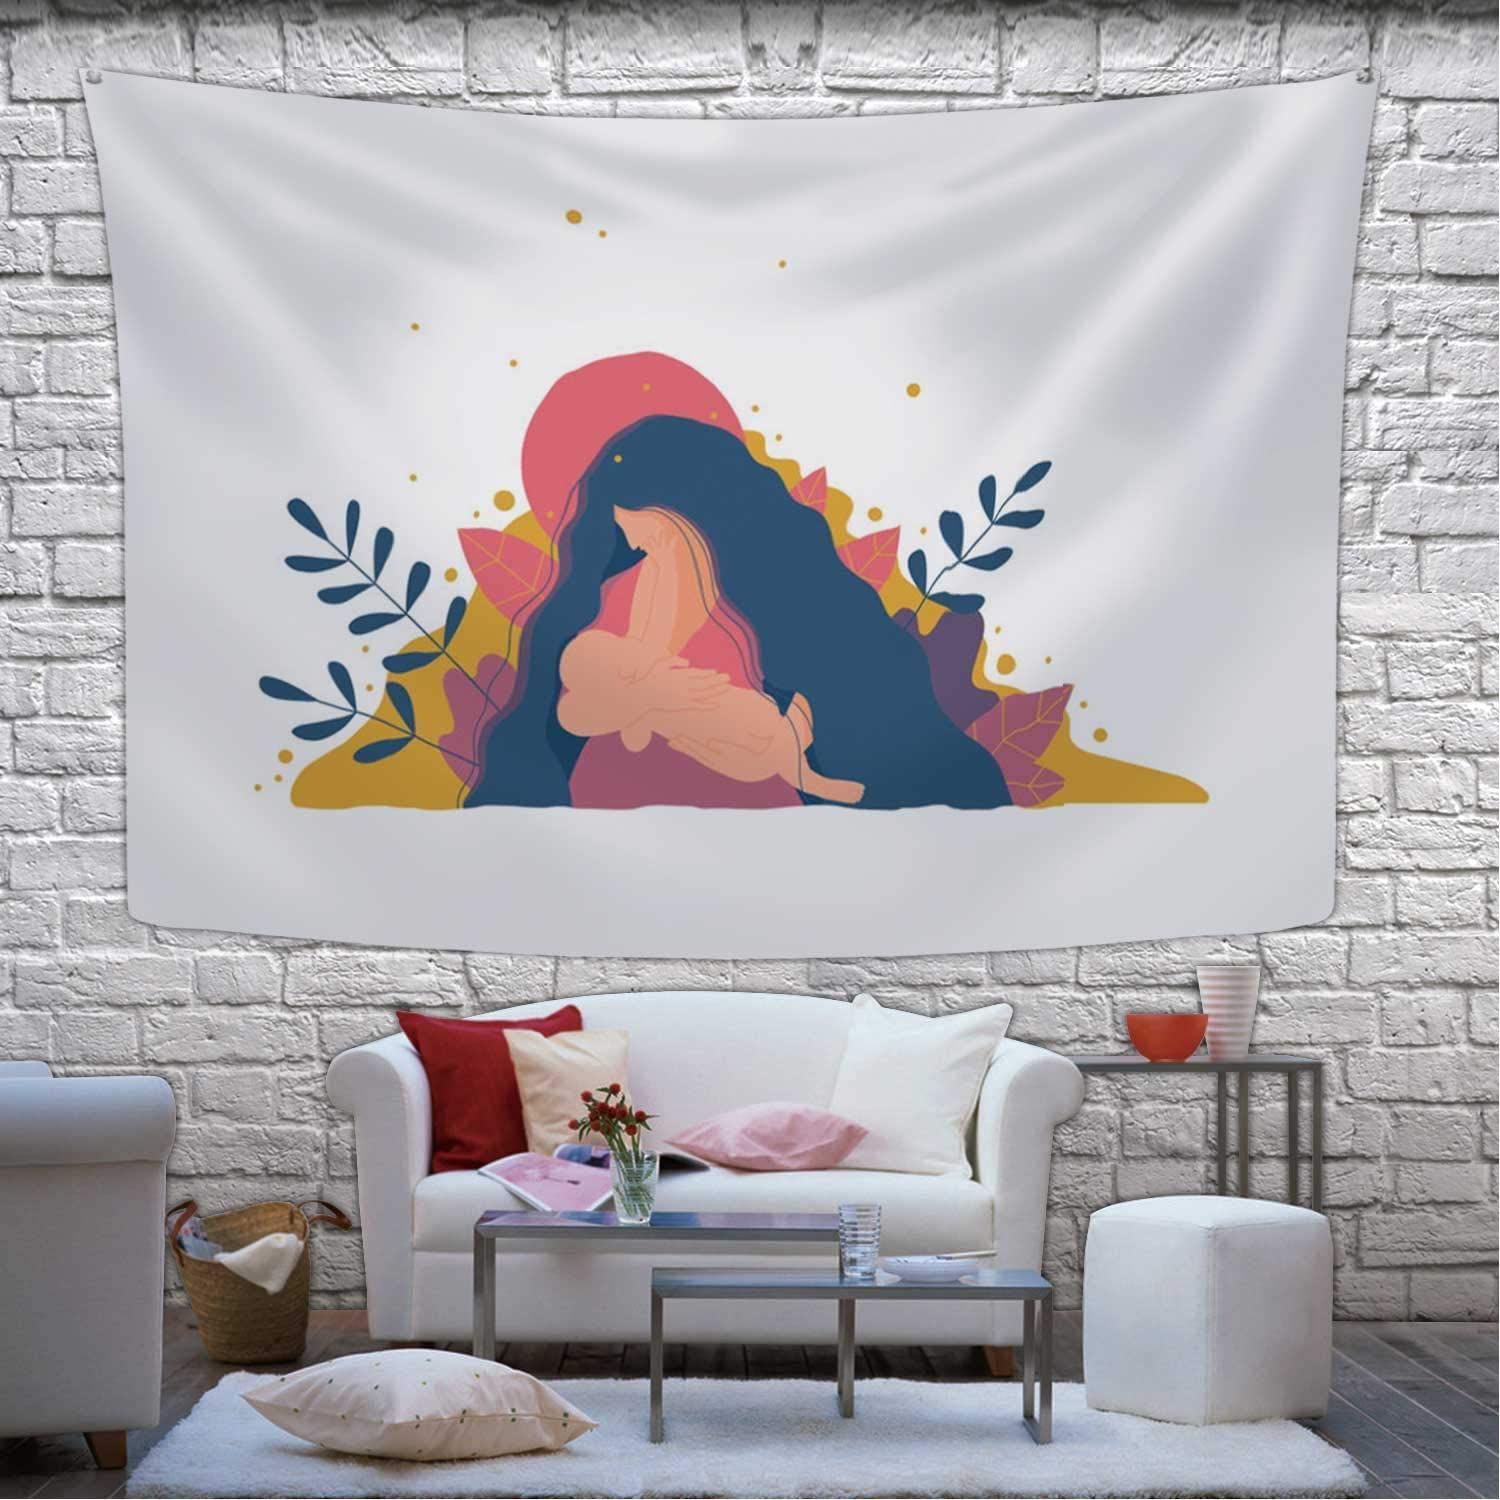 Realize Stylish Mother Breastfeeding Her Newborn Baby Tapestry Wall Hanging,080792 Wall Art for Living Room Dorm Decor,78.7''W X 59.1''H 80x60(in)